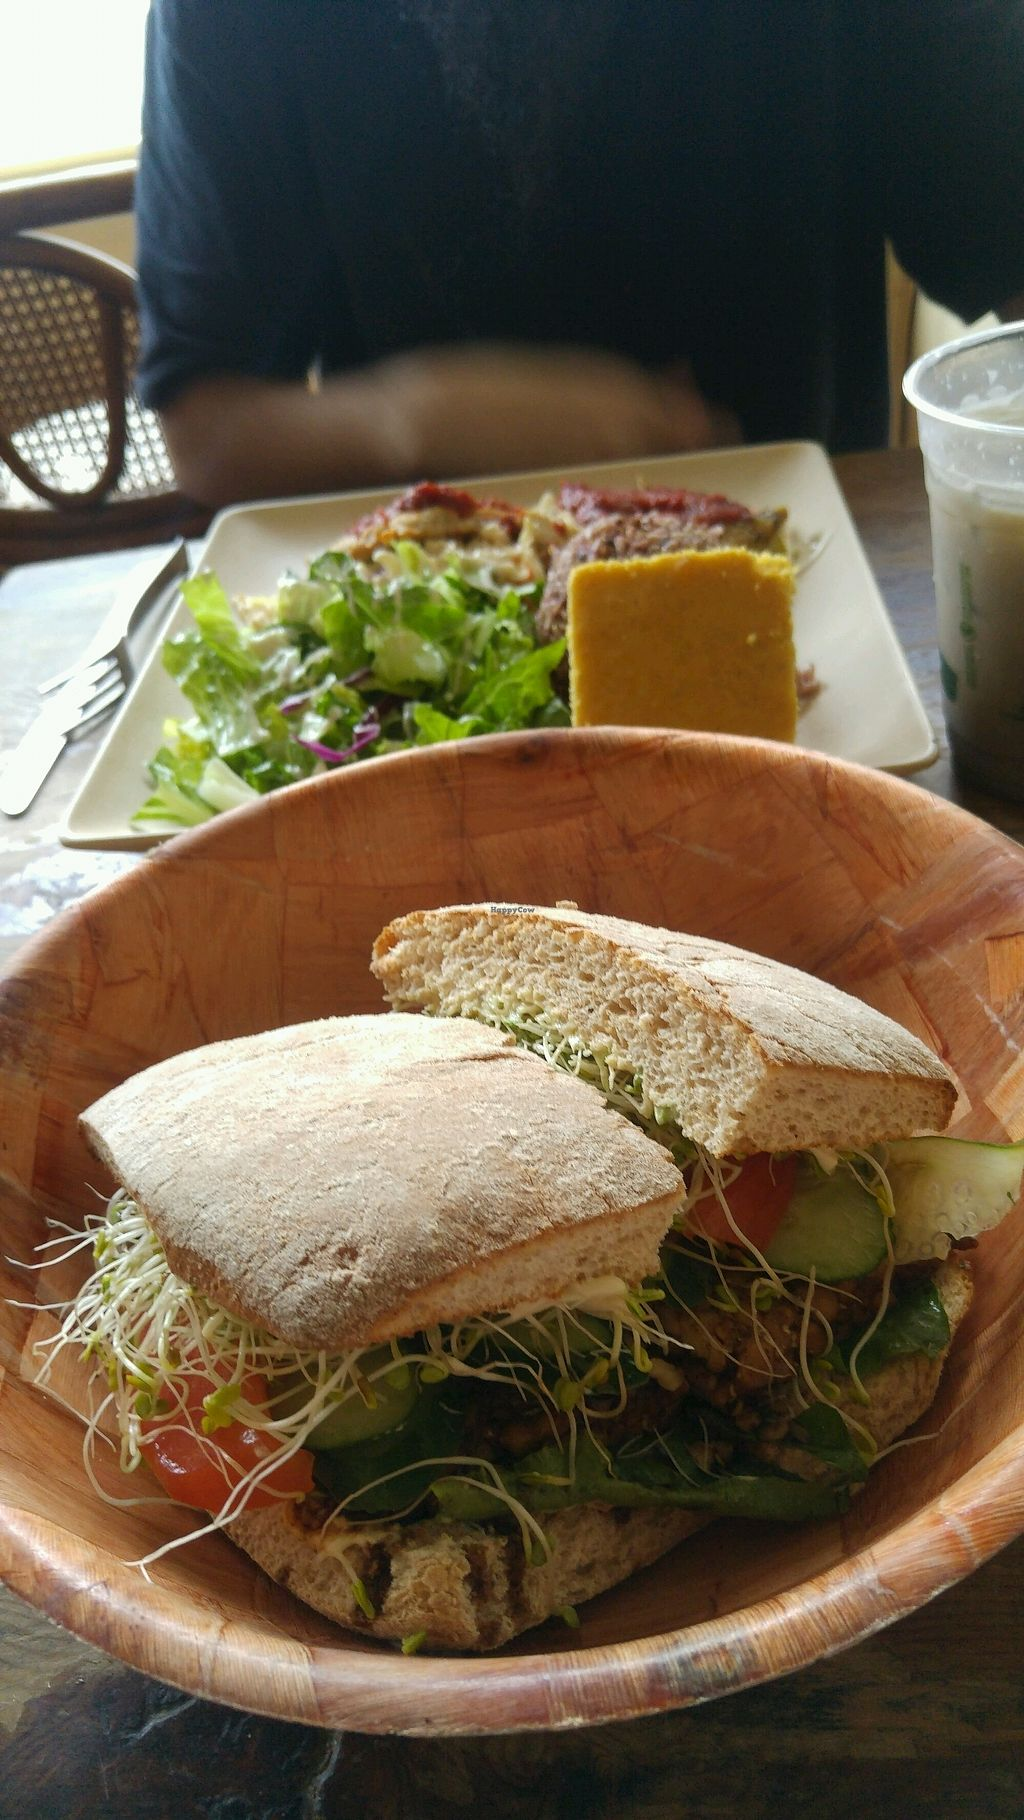 """Photo of Peace Cafe  by <a href=""""/members/profile/CamilaB"""">CamilaB</a> <br/>Tempting tempeh sandwich <br/> November 2, 2017  - <a href='/contact/abuse/image/21735/321044'>Report</a>"""